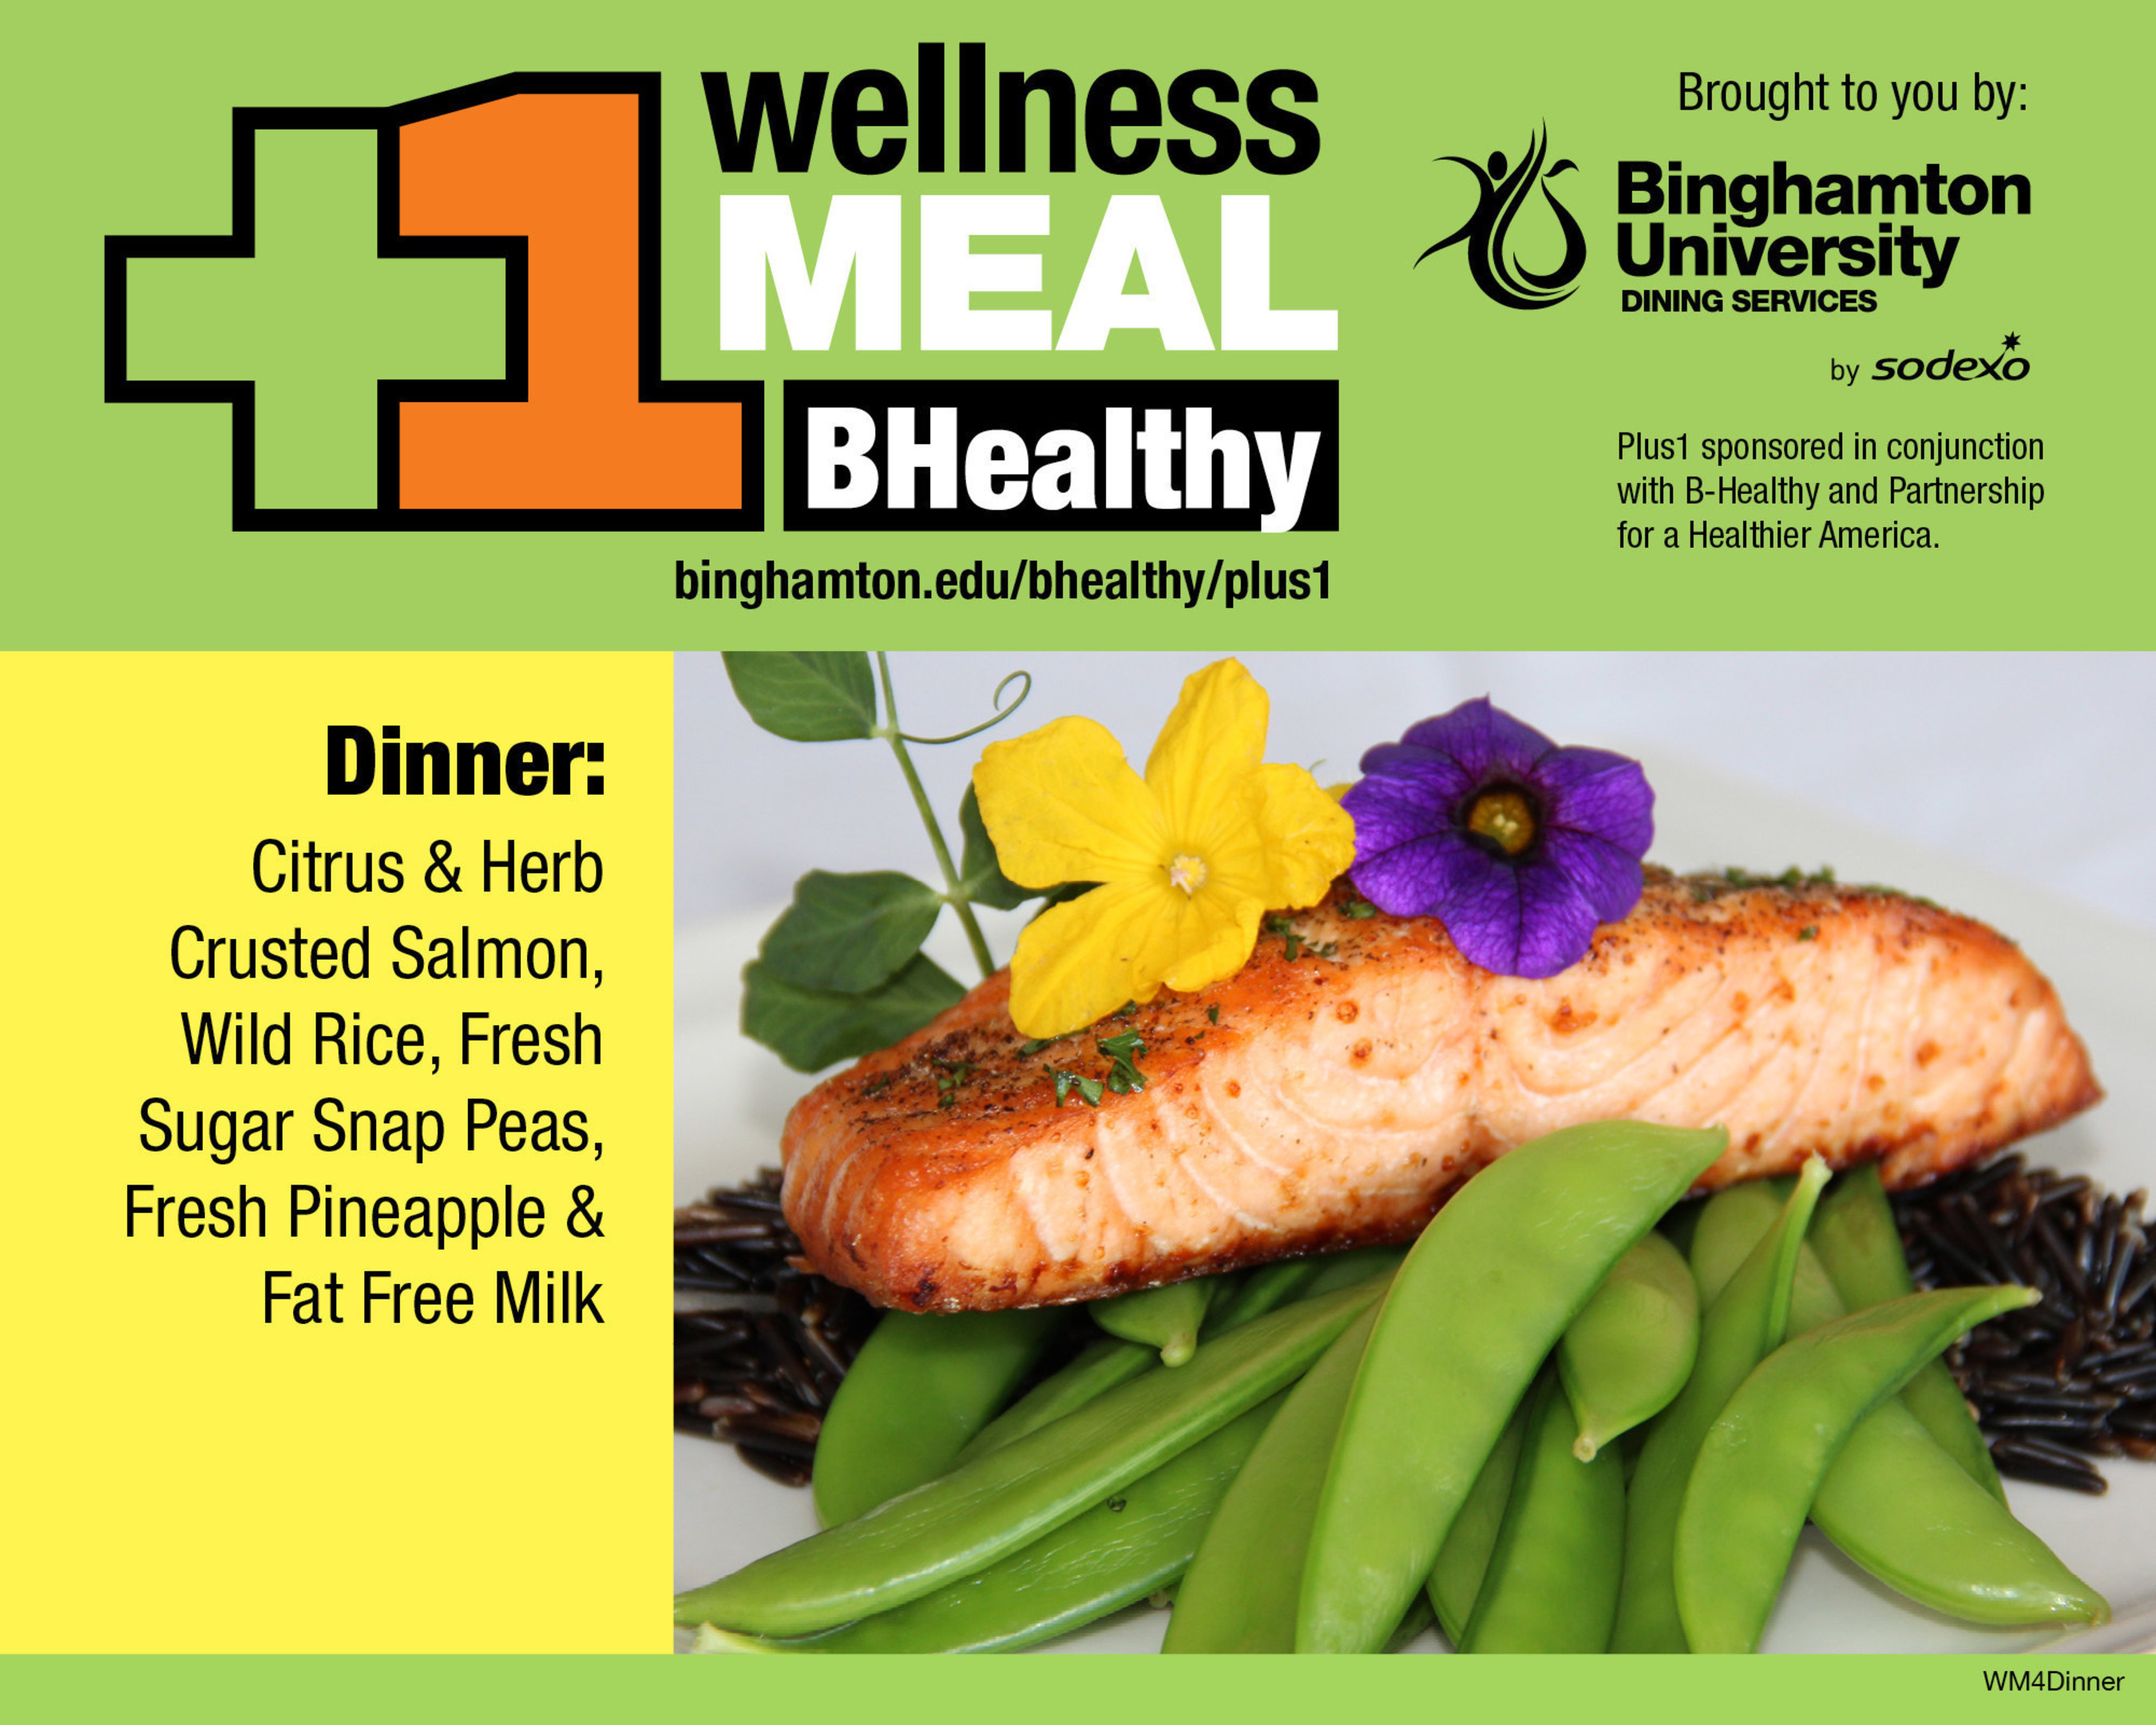 B-Healthy Wellness Meal at Binghamton University - Citrus and Herb Crusted Salmon, Wild Rice, Fresh Sugar Snap Peas, Fresh Pineapple and Fat Free Milk